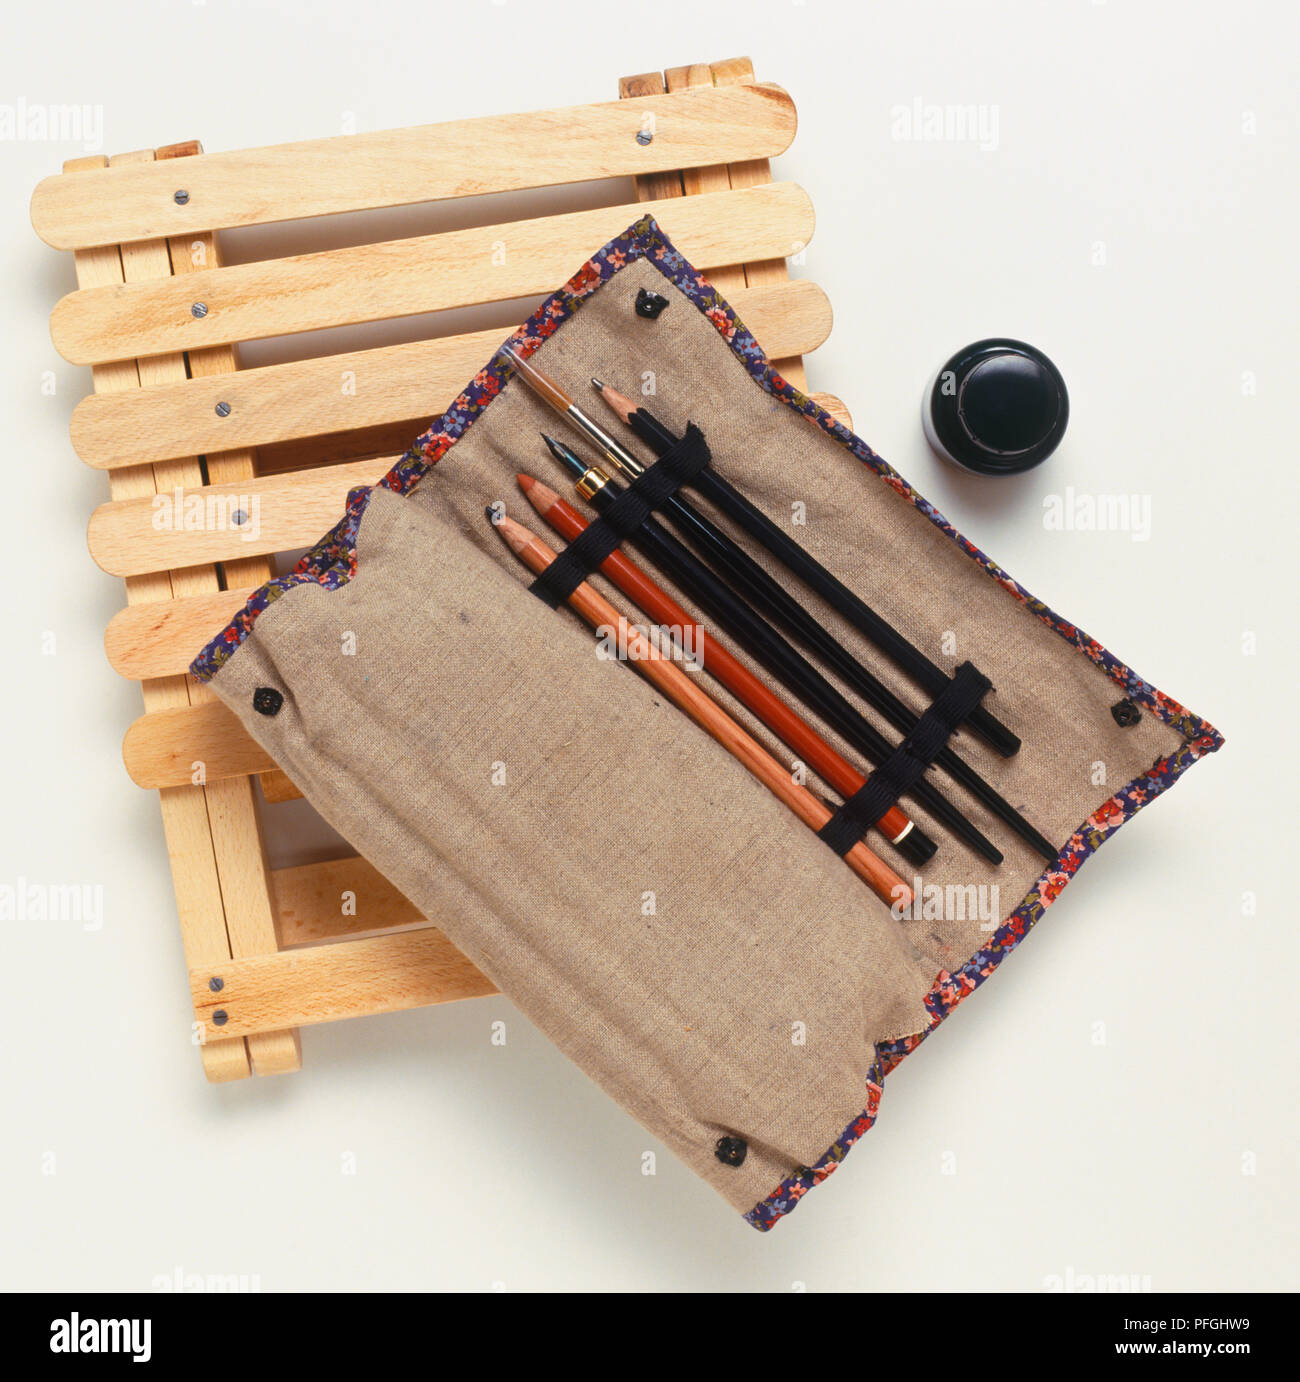 Artist's canvas roll containing pencils, brush and pen, on top of folding wooden stool. - Stock Image